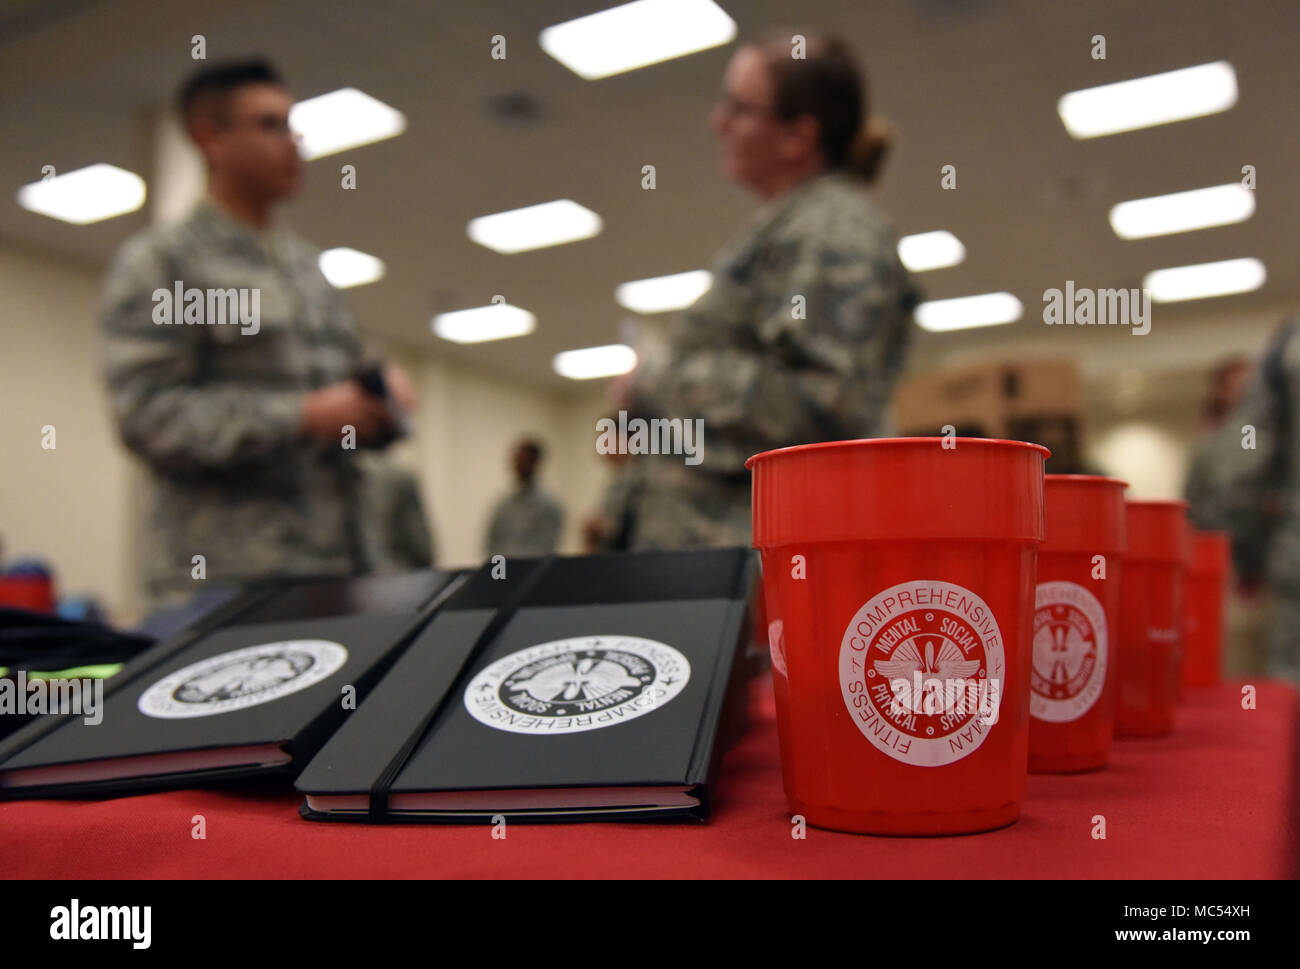 Enlisted Force Stock Photos & Enlisted Force Stock Images - Alamy